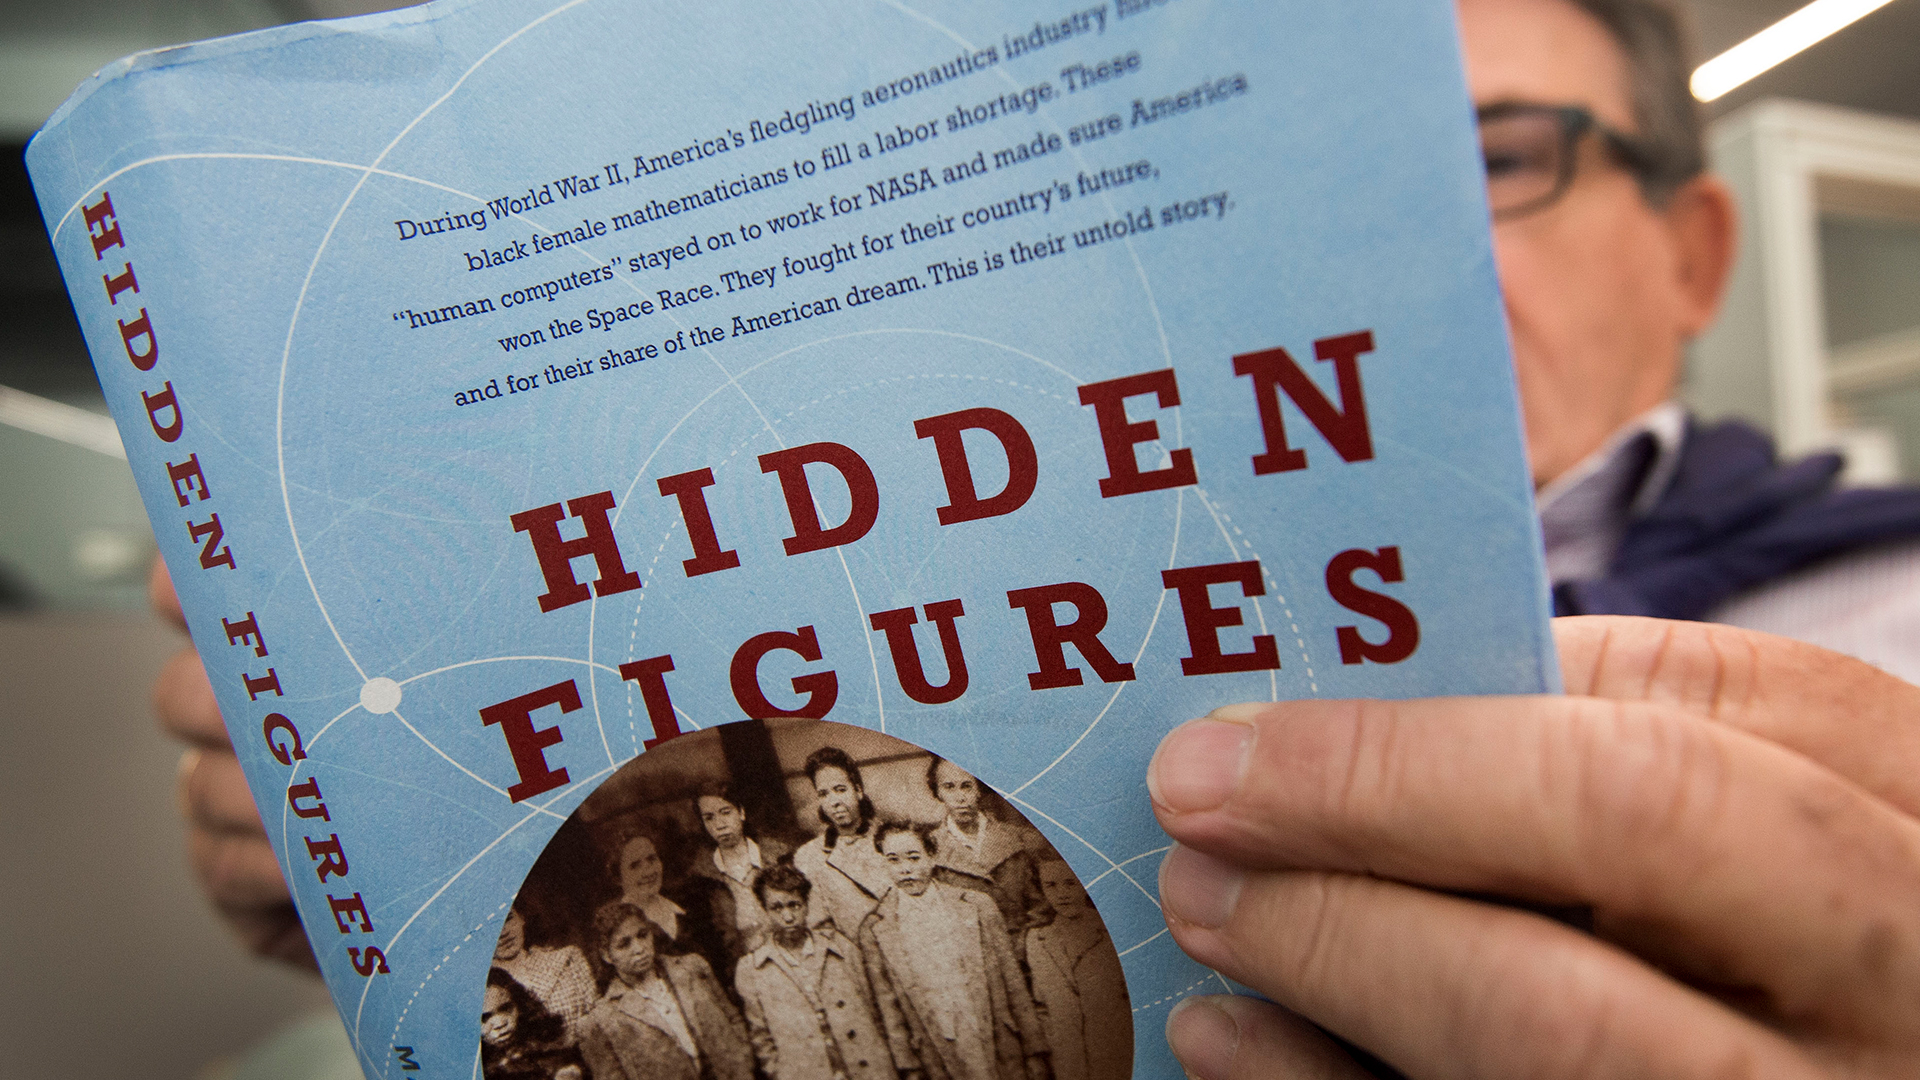 """Johnson work for NASA as she faced gender and race discriminations was the inspiration for the book """"Hidden Figures"""" by , Margot Lee Shetterly."""